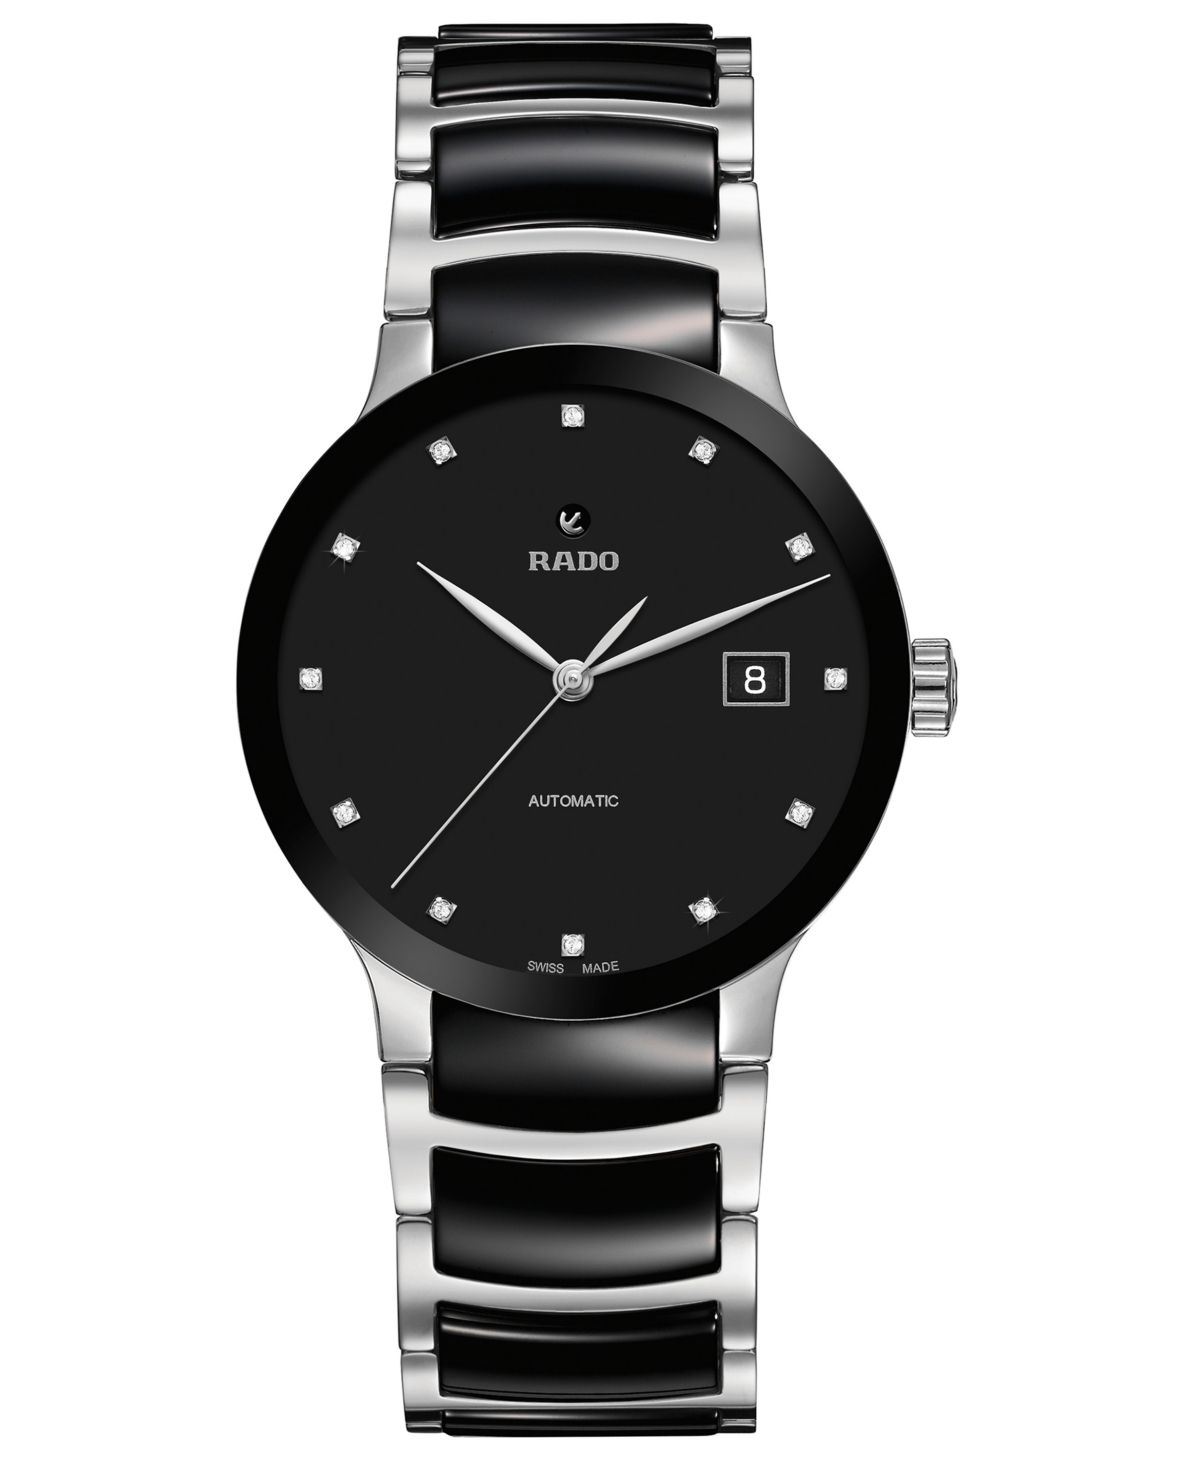 Rado Women S Swiss Automatic Centrix Diamond Accent Black Ceramic Stainless Steel Bracelet Watch 38mm Reviews All Fine Jewelry Jewelry Watches Macy In 2020 Stainless Steel Bracelet